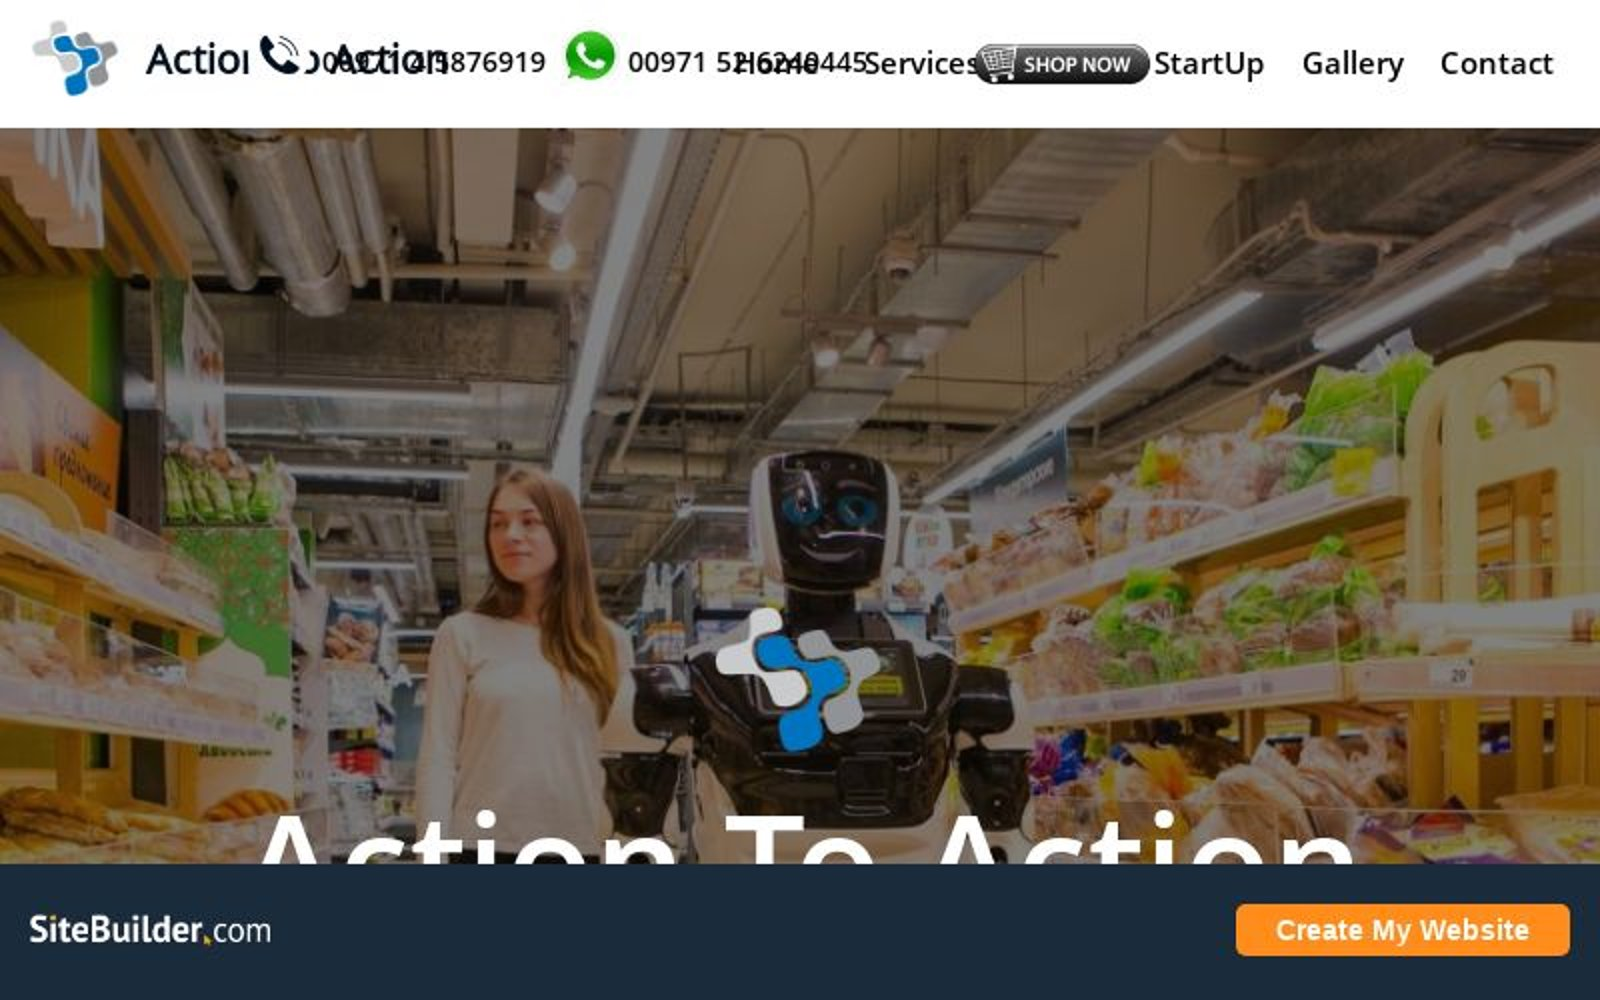 ACTIONTOACTION